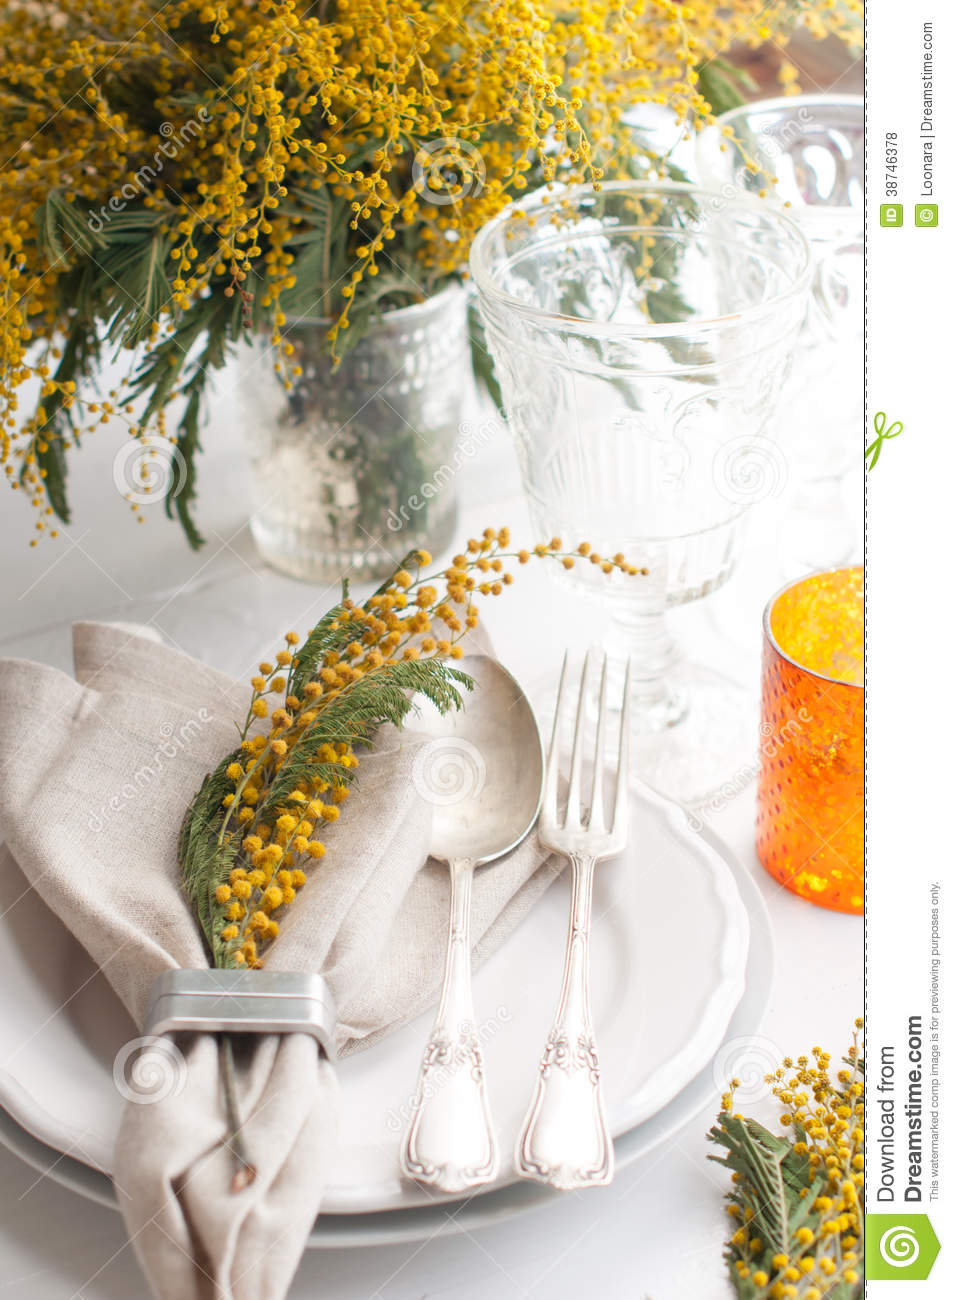 Spring Festive Dining Table Setting Royalty Free Stock